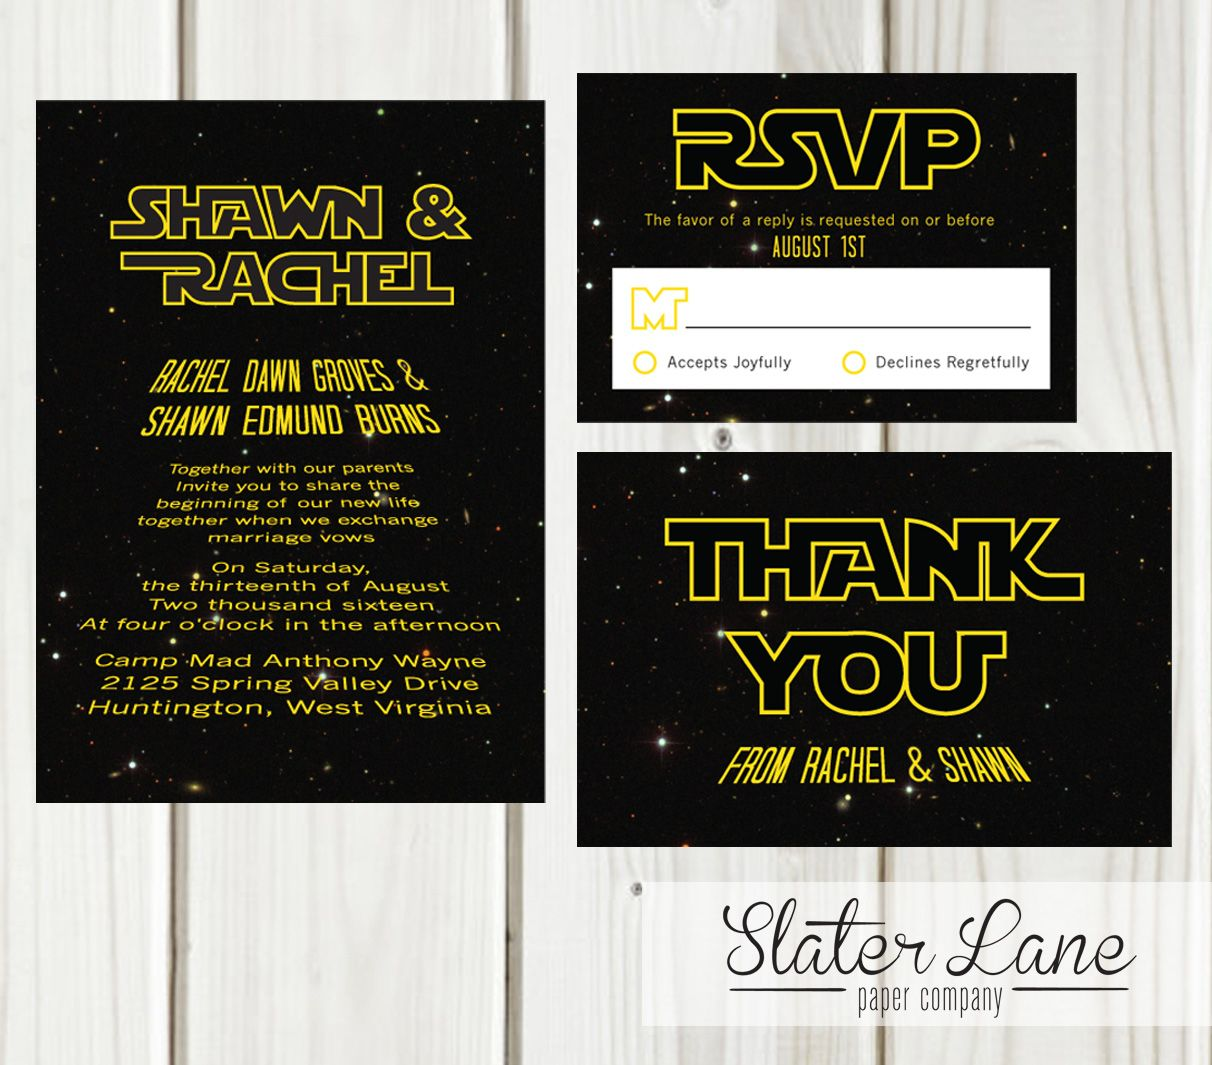 Simple straightforward theme invitation set for a Star Wars